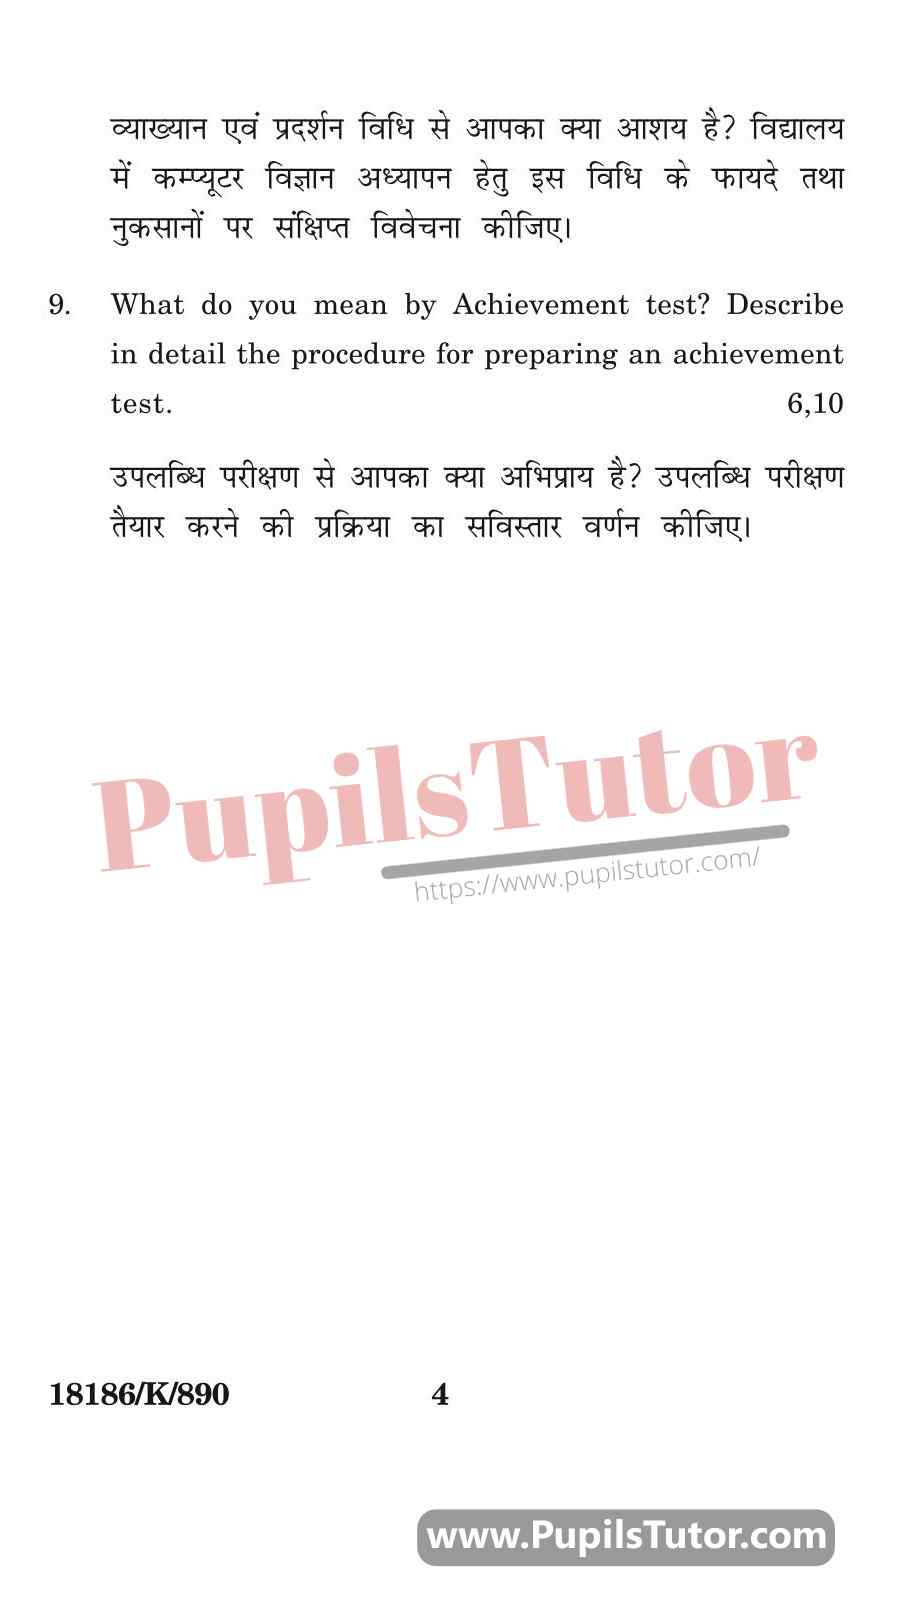 KUK (Kurukshetra University, Haryana) Pedagogy Of Computer Science Question Paper 2020 For B.Ed 1st And 2nd Year And All The 4 Semesters In English And Hindi Medium Free Download PDF - Page 4 - pupilstutor